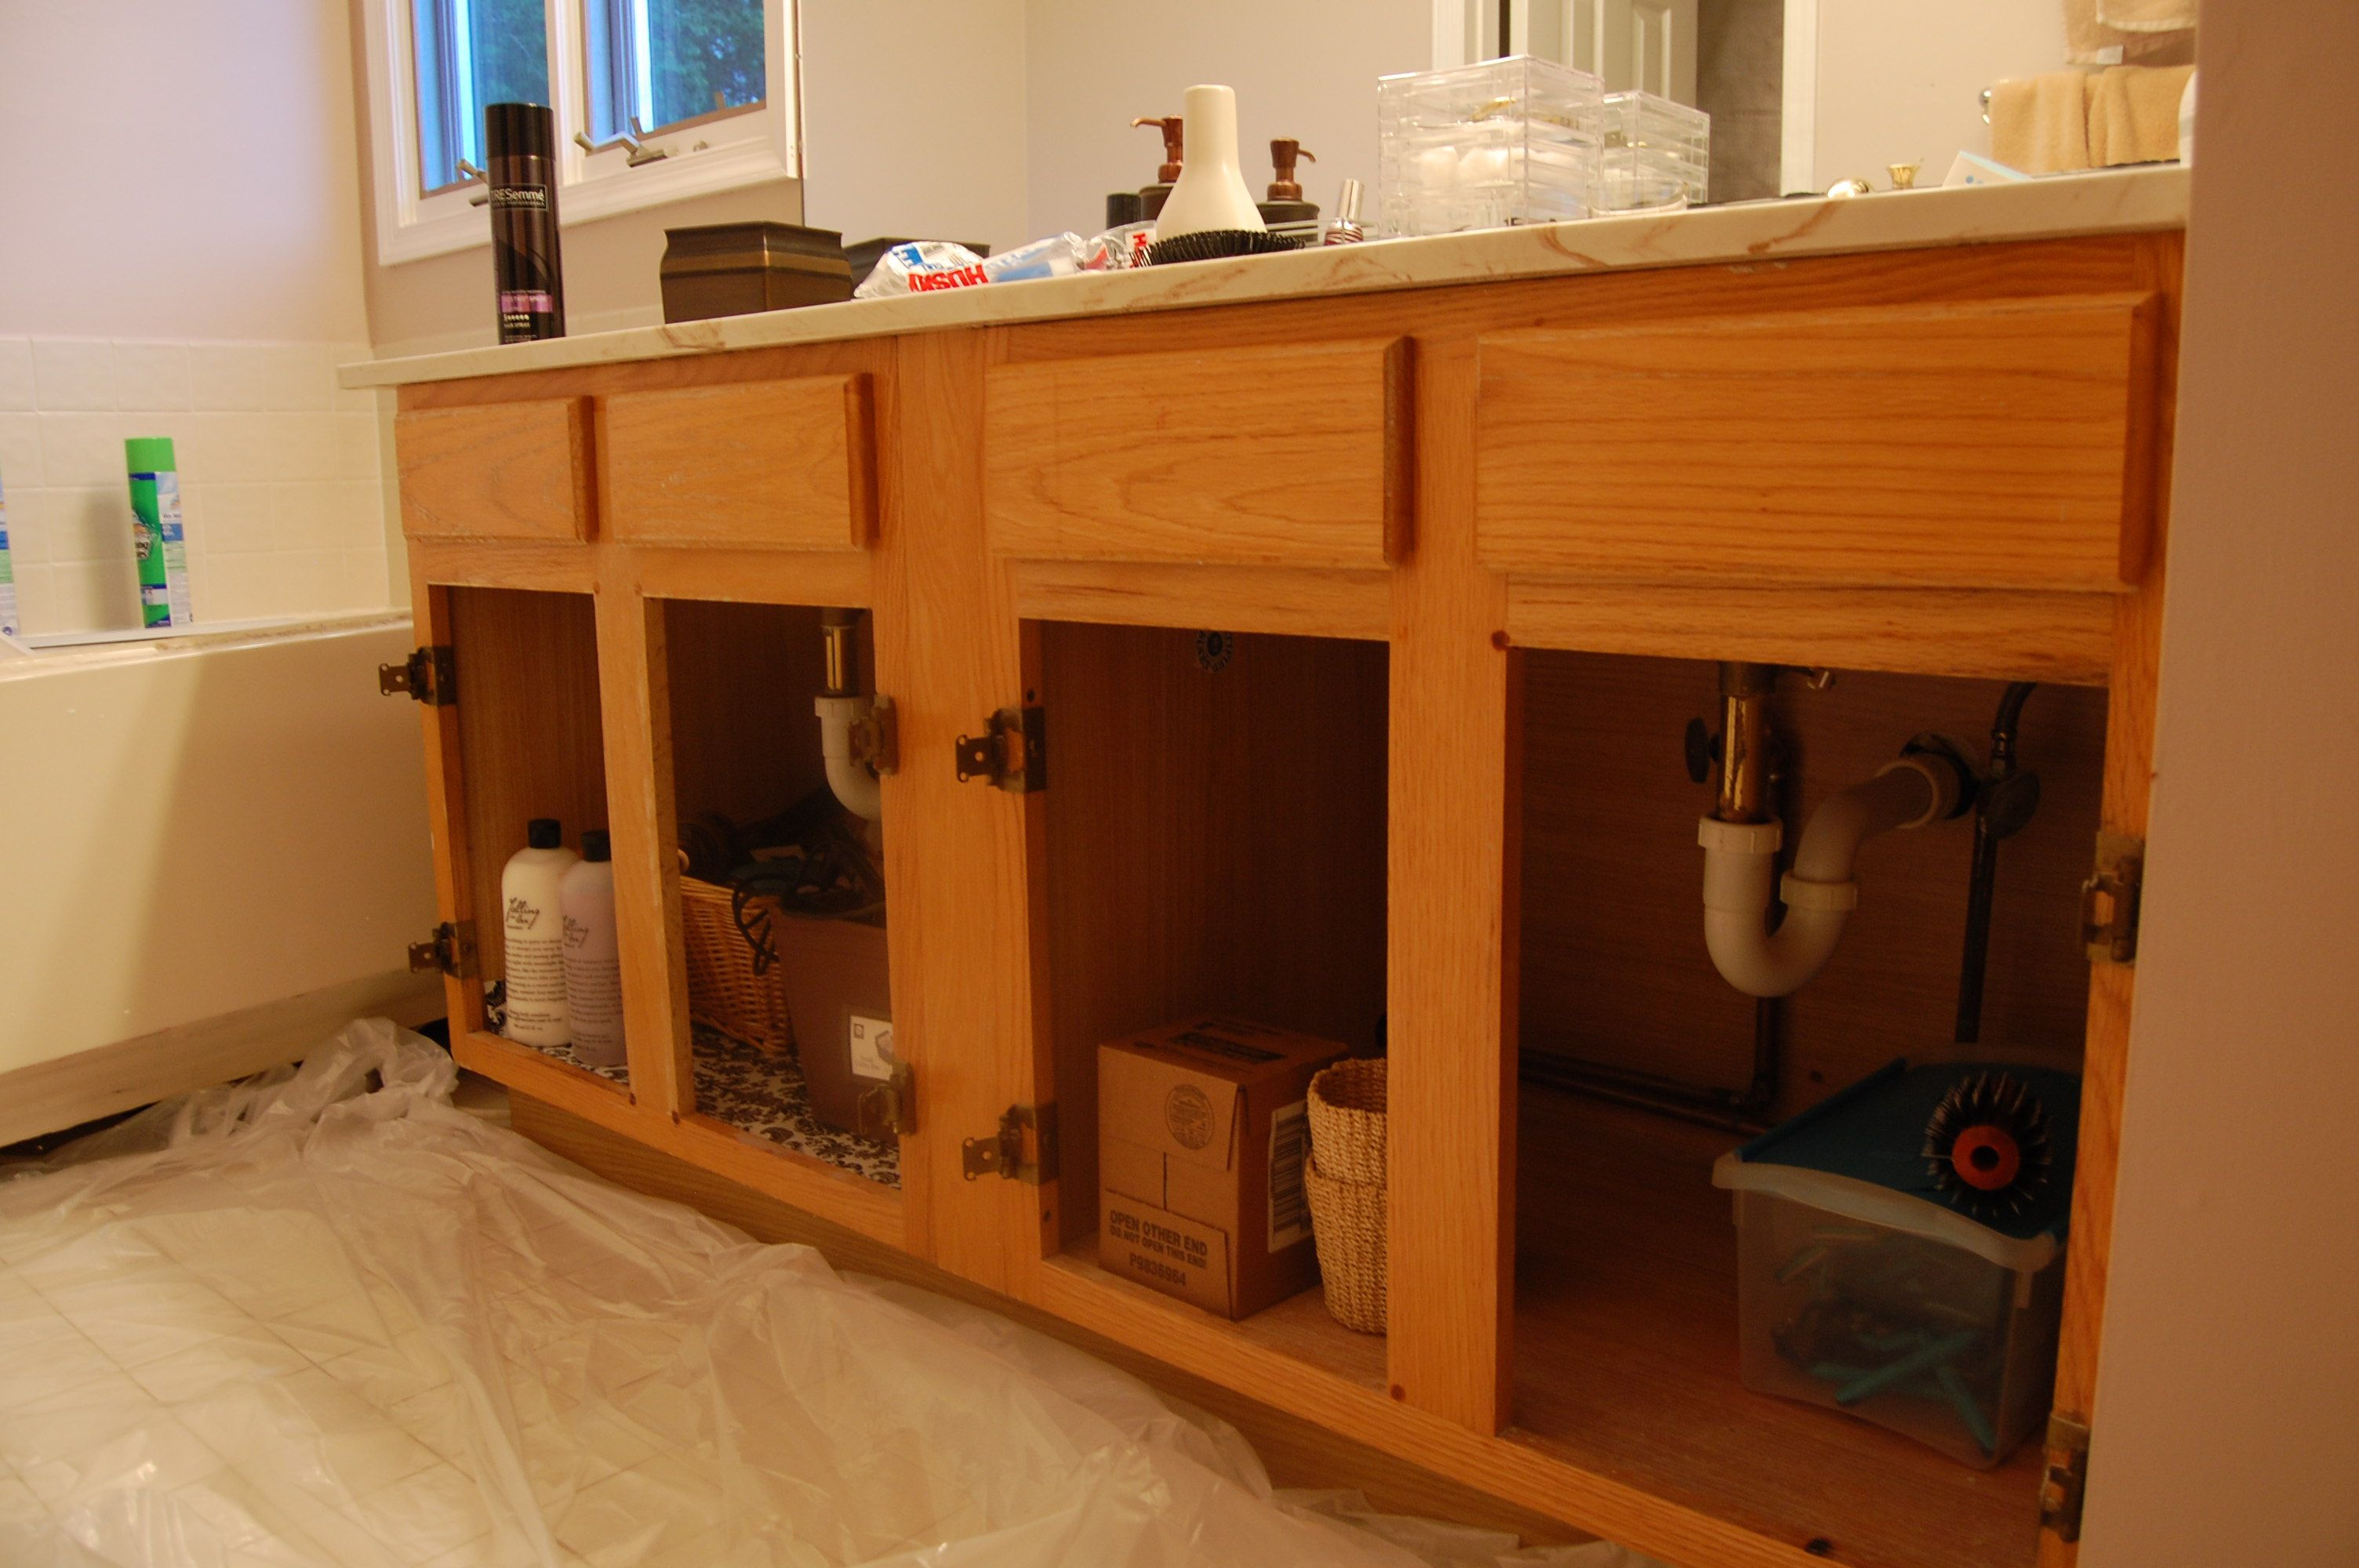 Painting A Bathroom Vanity  Zinsser Primer Was Oil Based But The Paint Used  Was